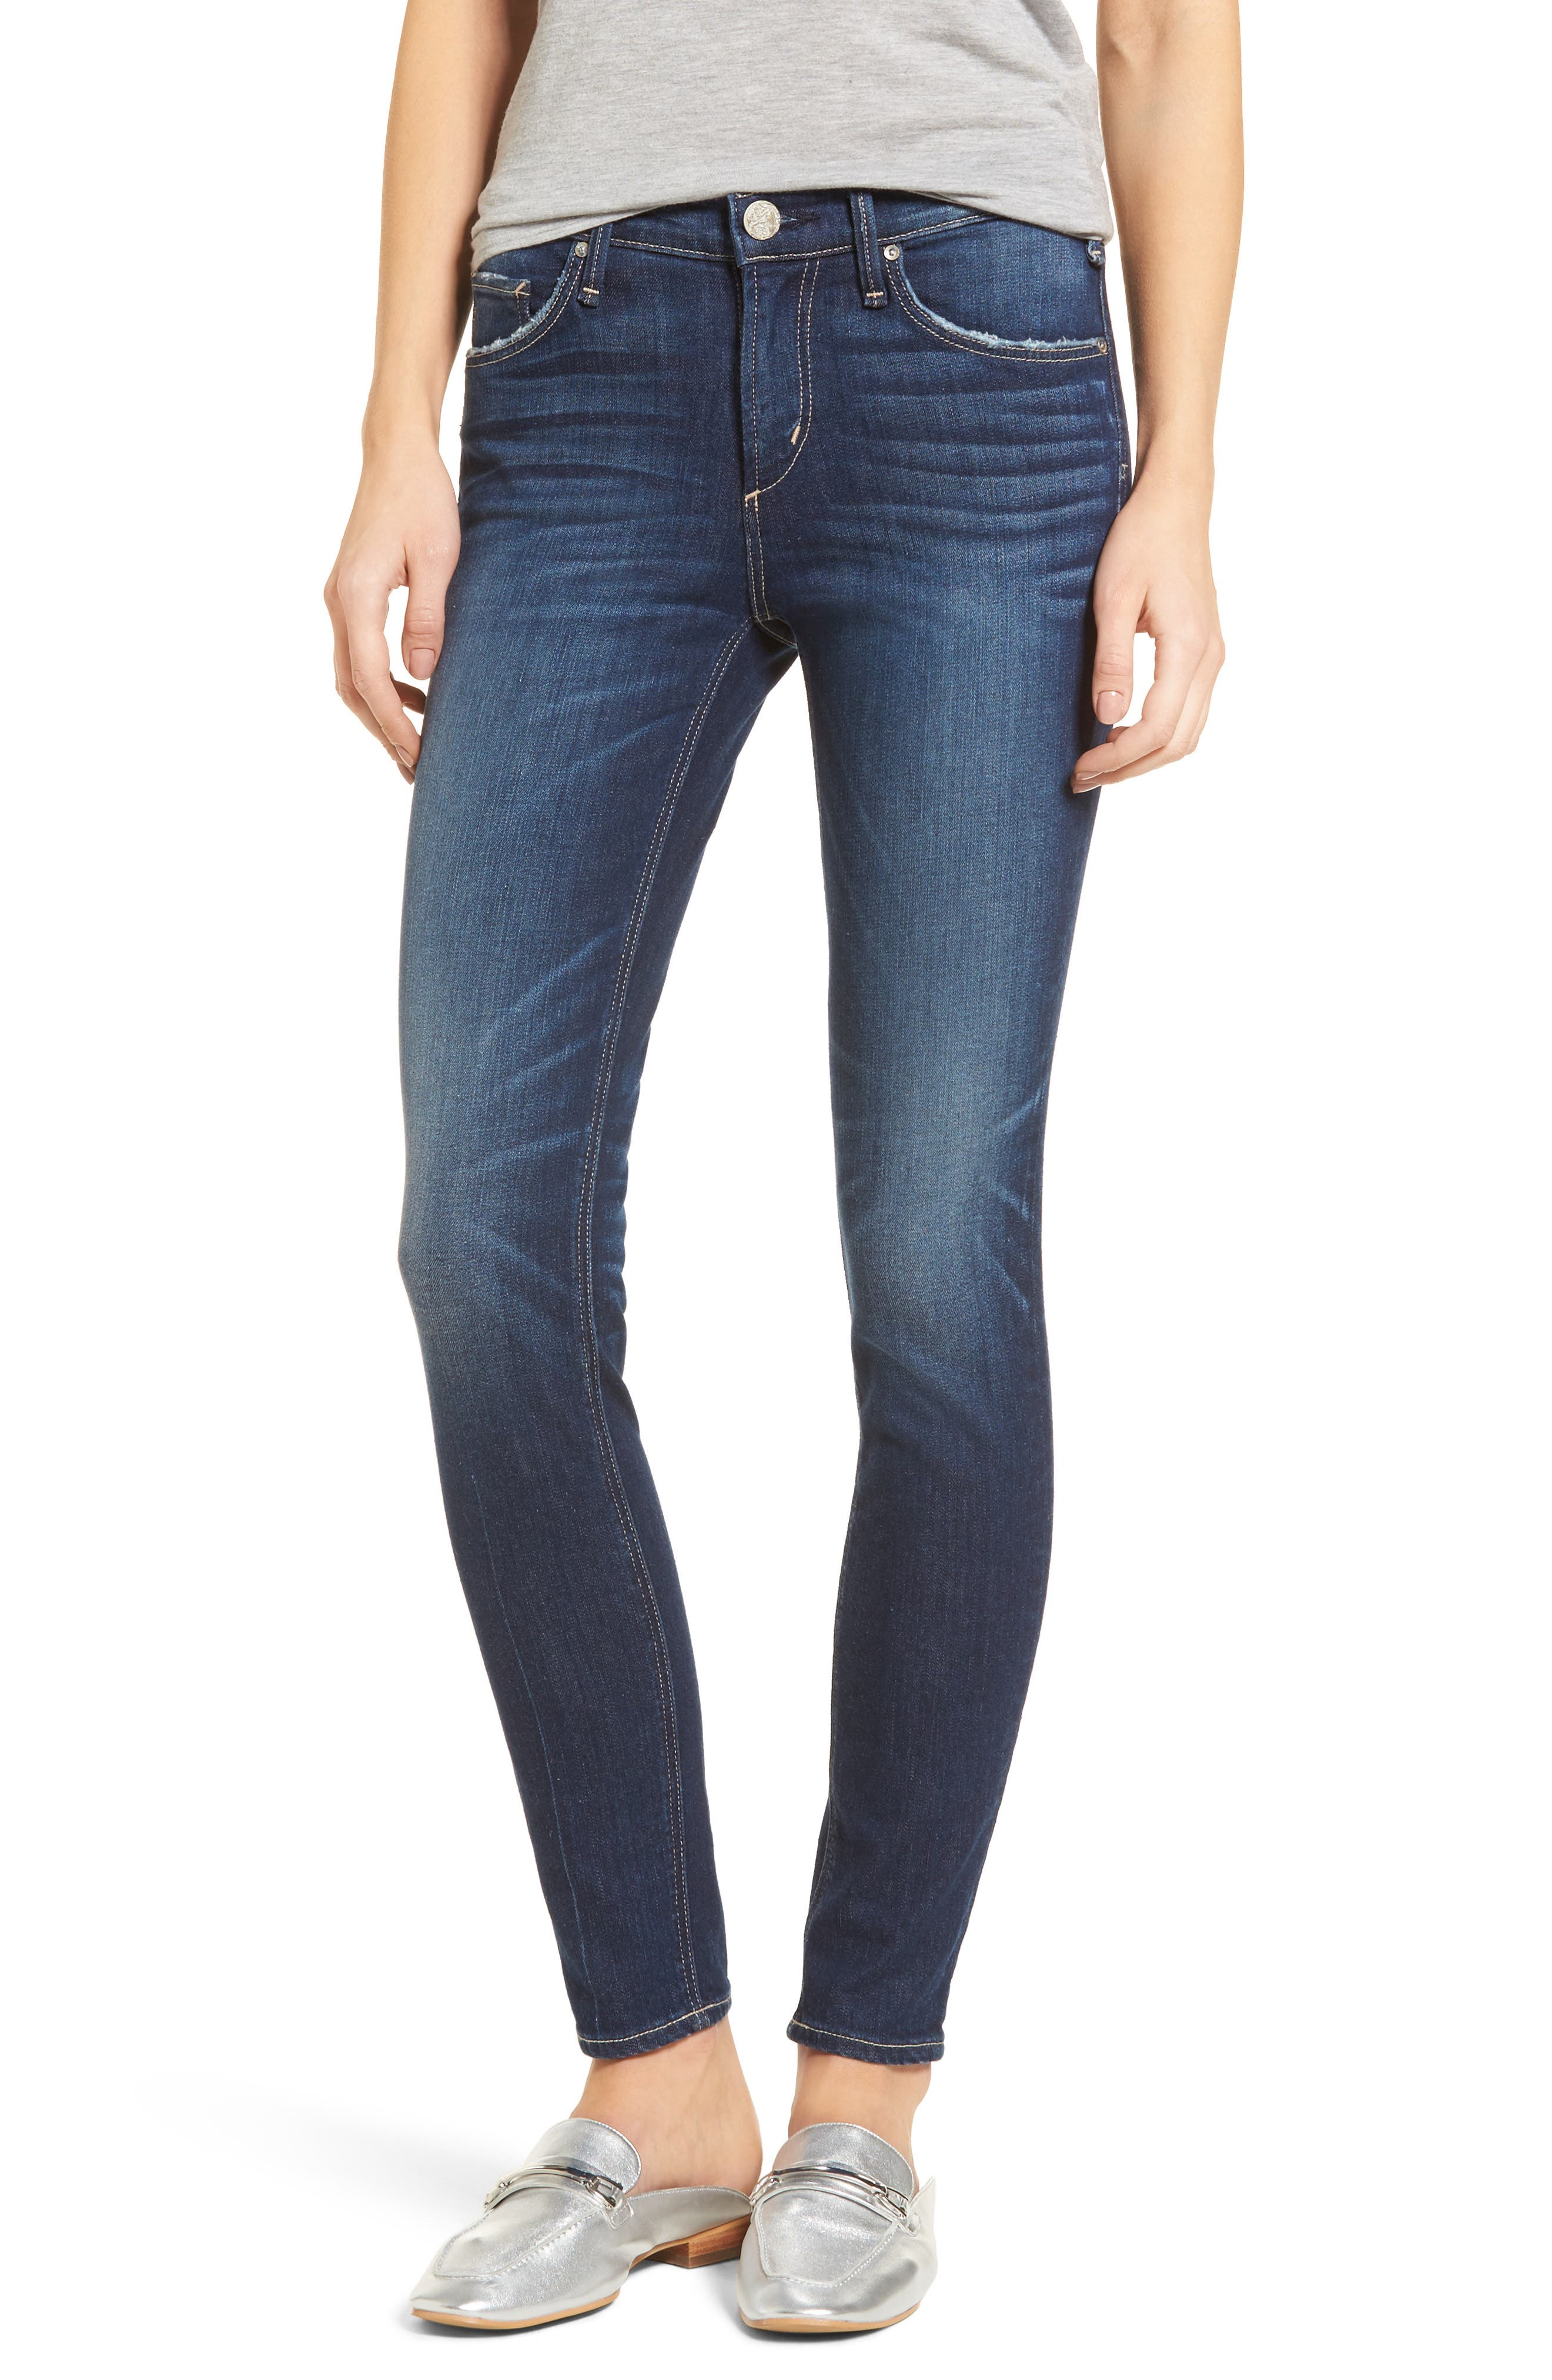 Alternate Image 1 Selected - McGuire Newton Skinny Jeans (Chateau)